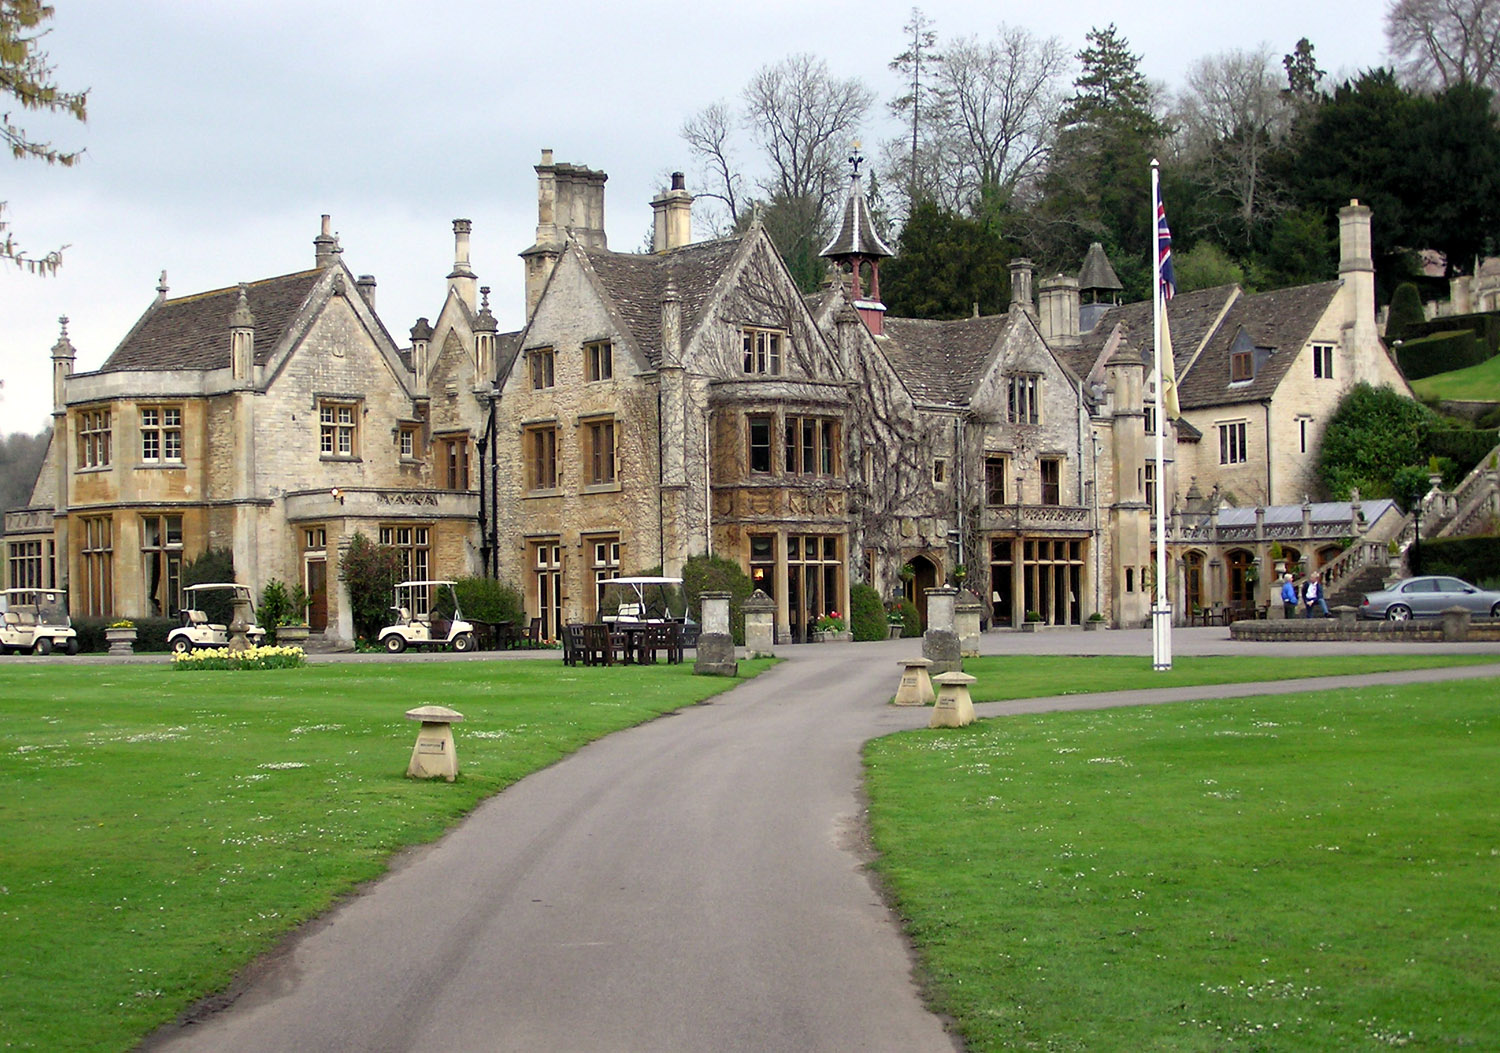 File:Castle.combe.hotel.arp.jpg - Wikipedia, the free encyclopedia